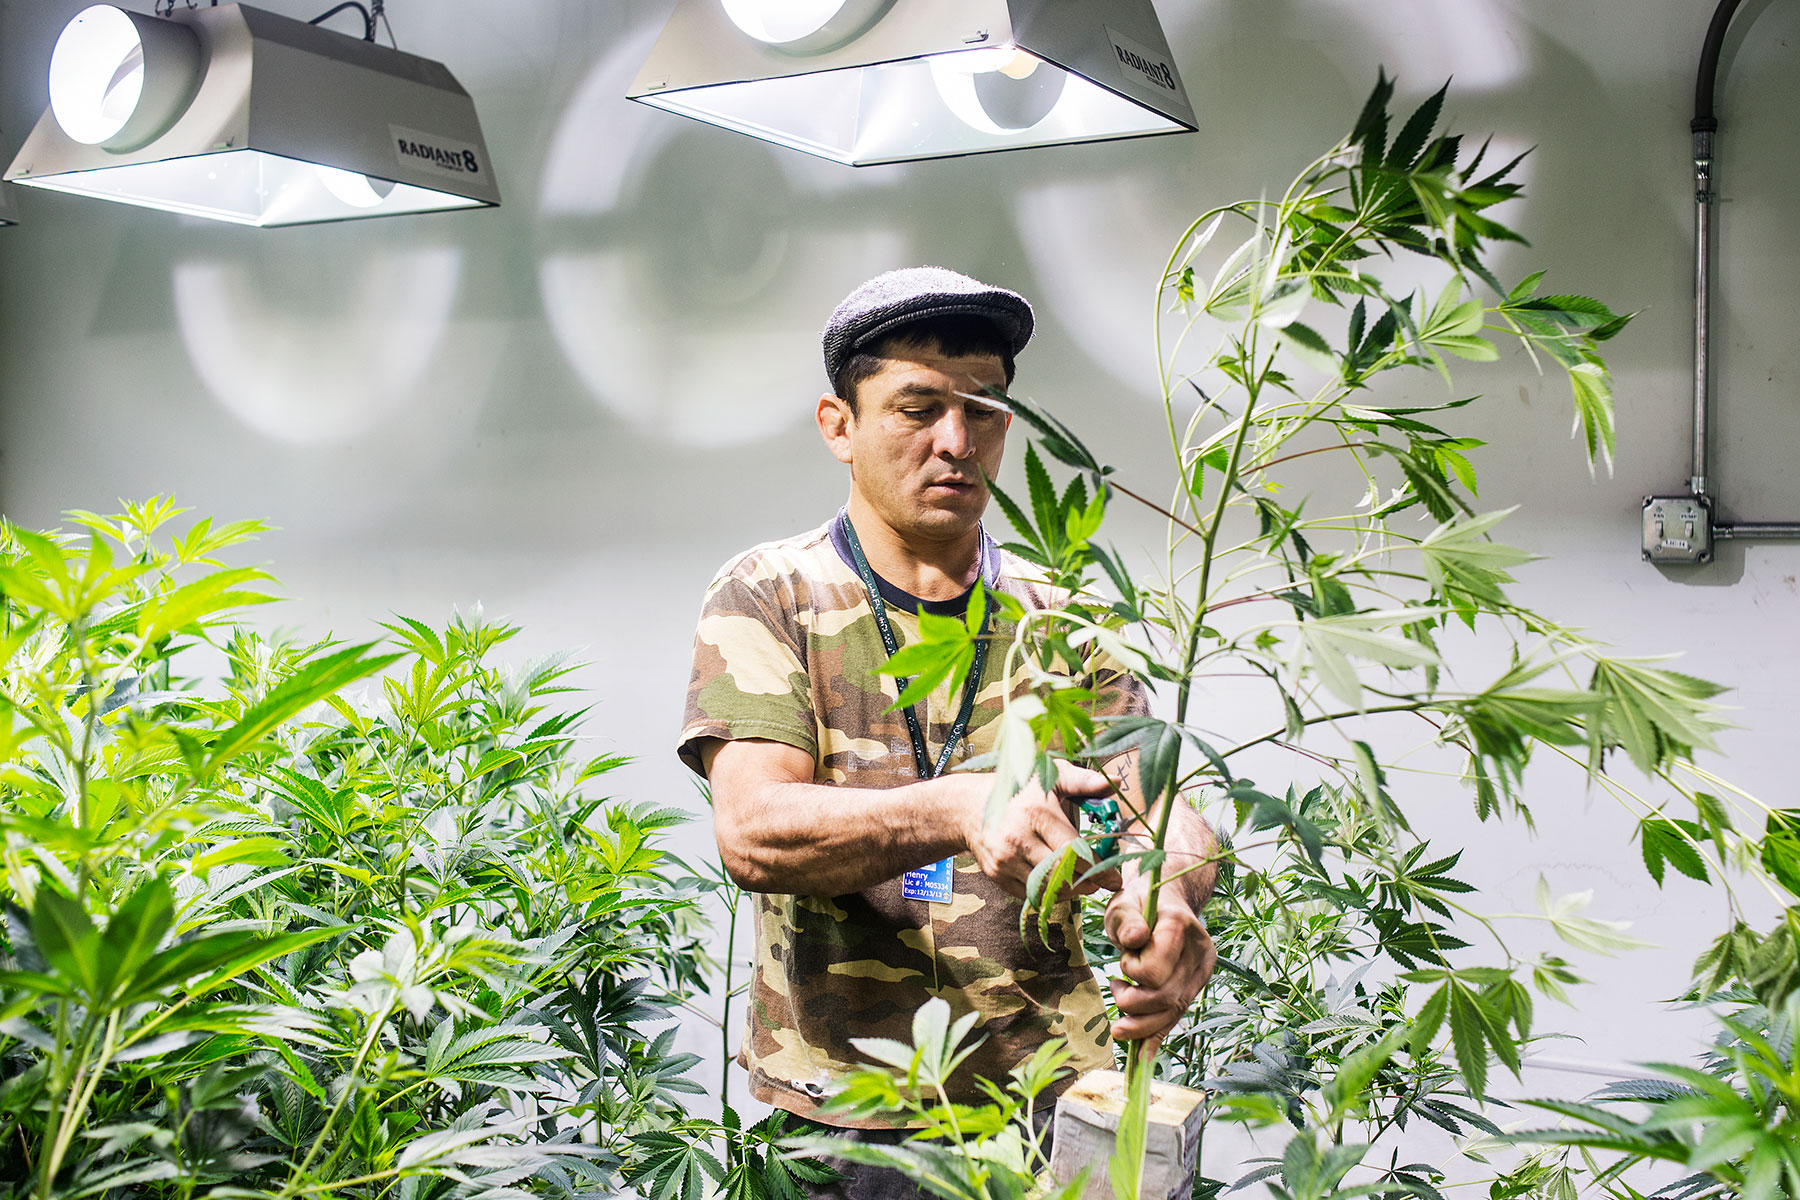 Colorado requires pot shops like Medicine Man to grow 70% of their product.